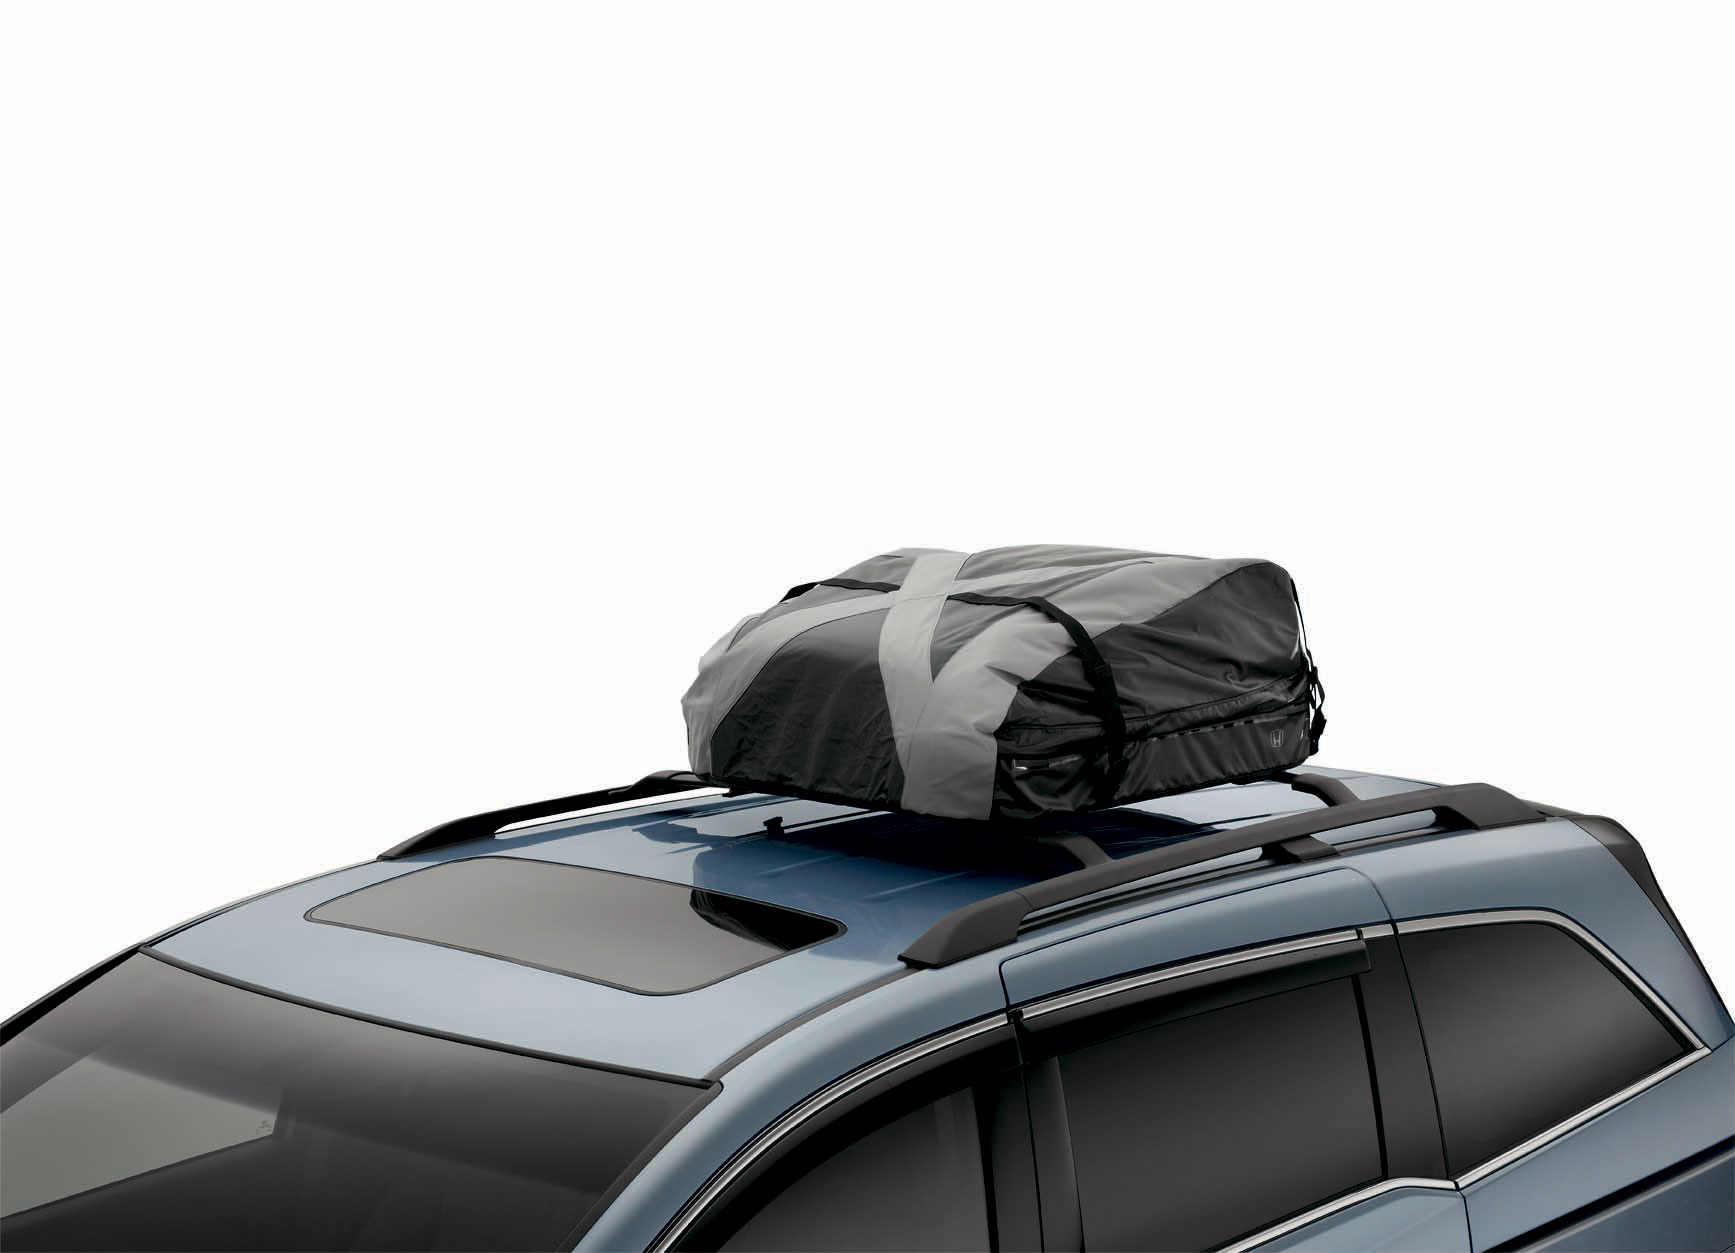 Soft Cargo Bag Odyssey 08l20 E09 100 310 95